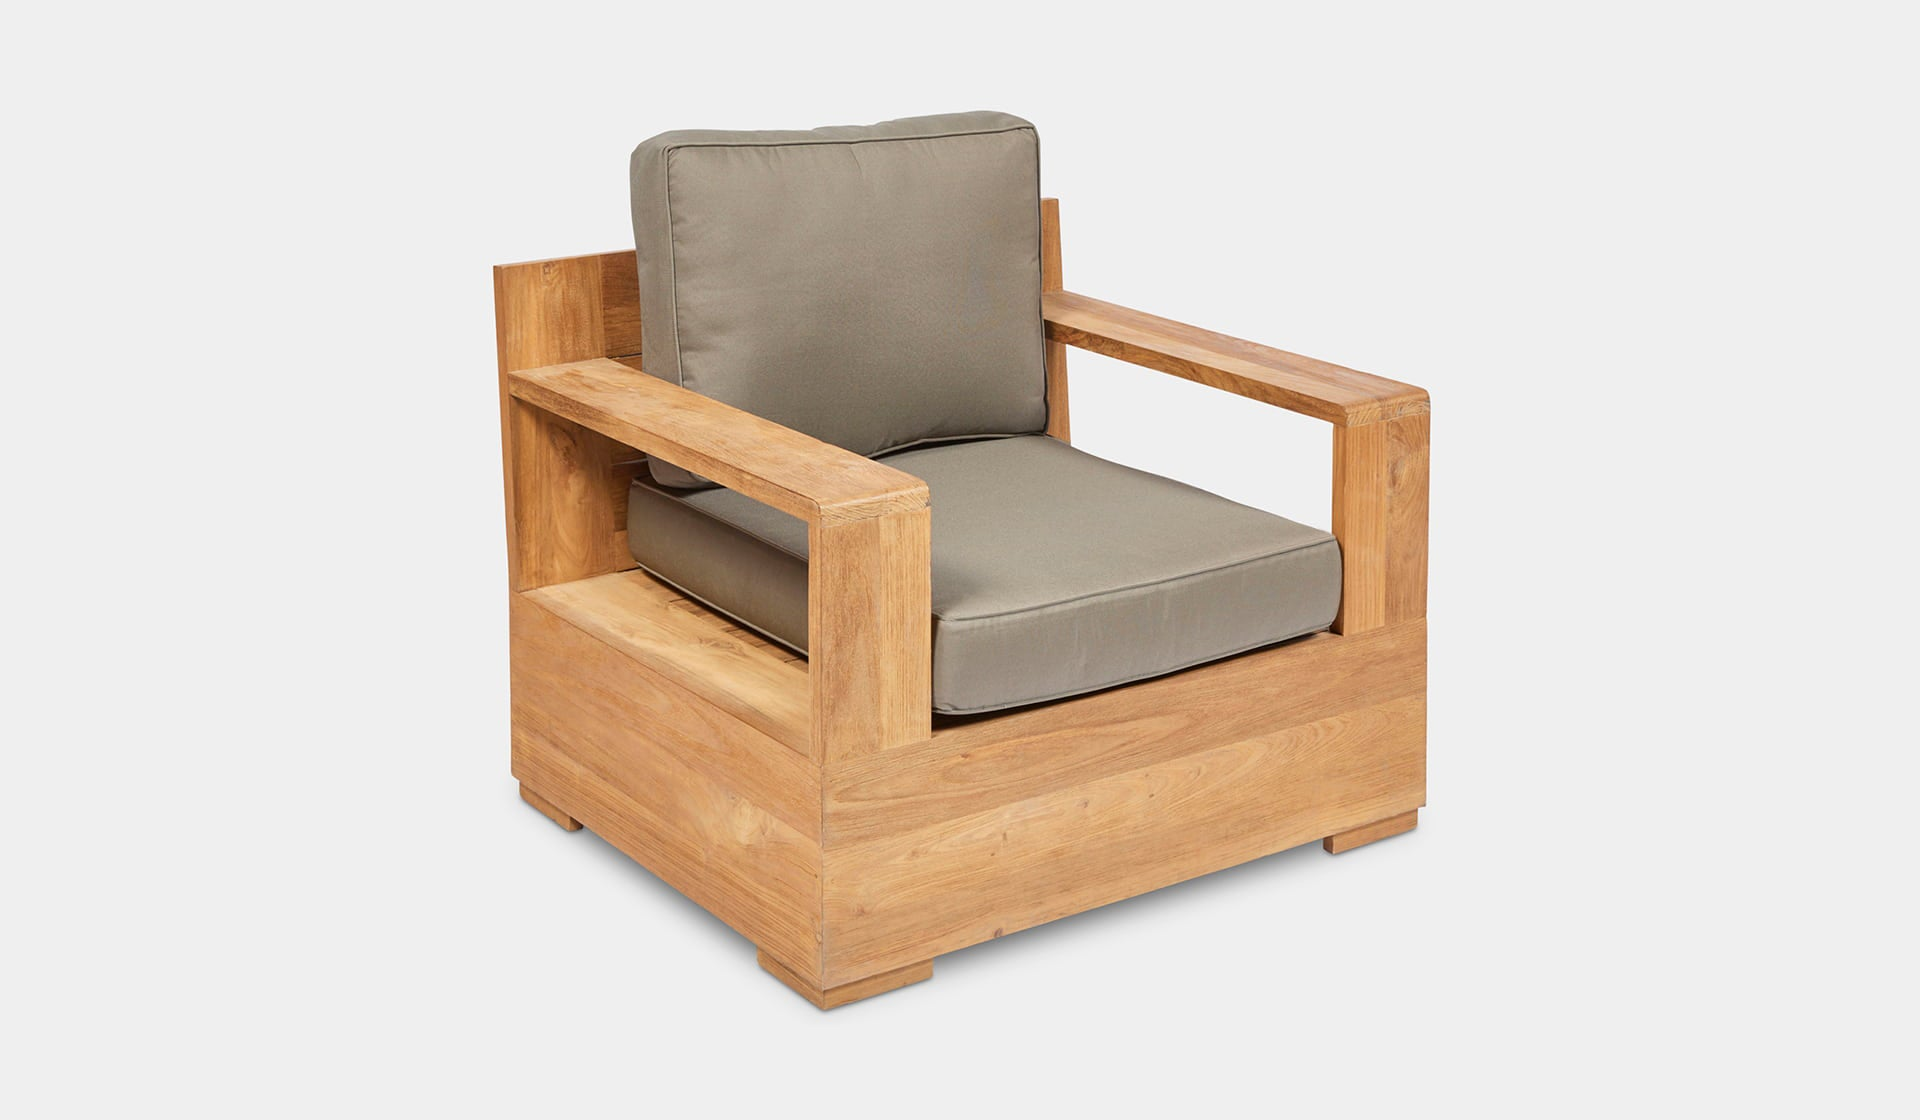 Reclaimed-Teak-Outdoor-Lounger-Monte-Carlo-1Seater-r6